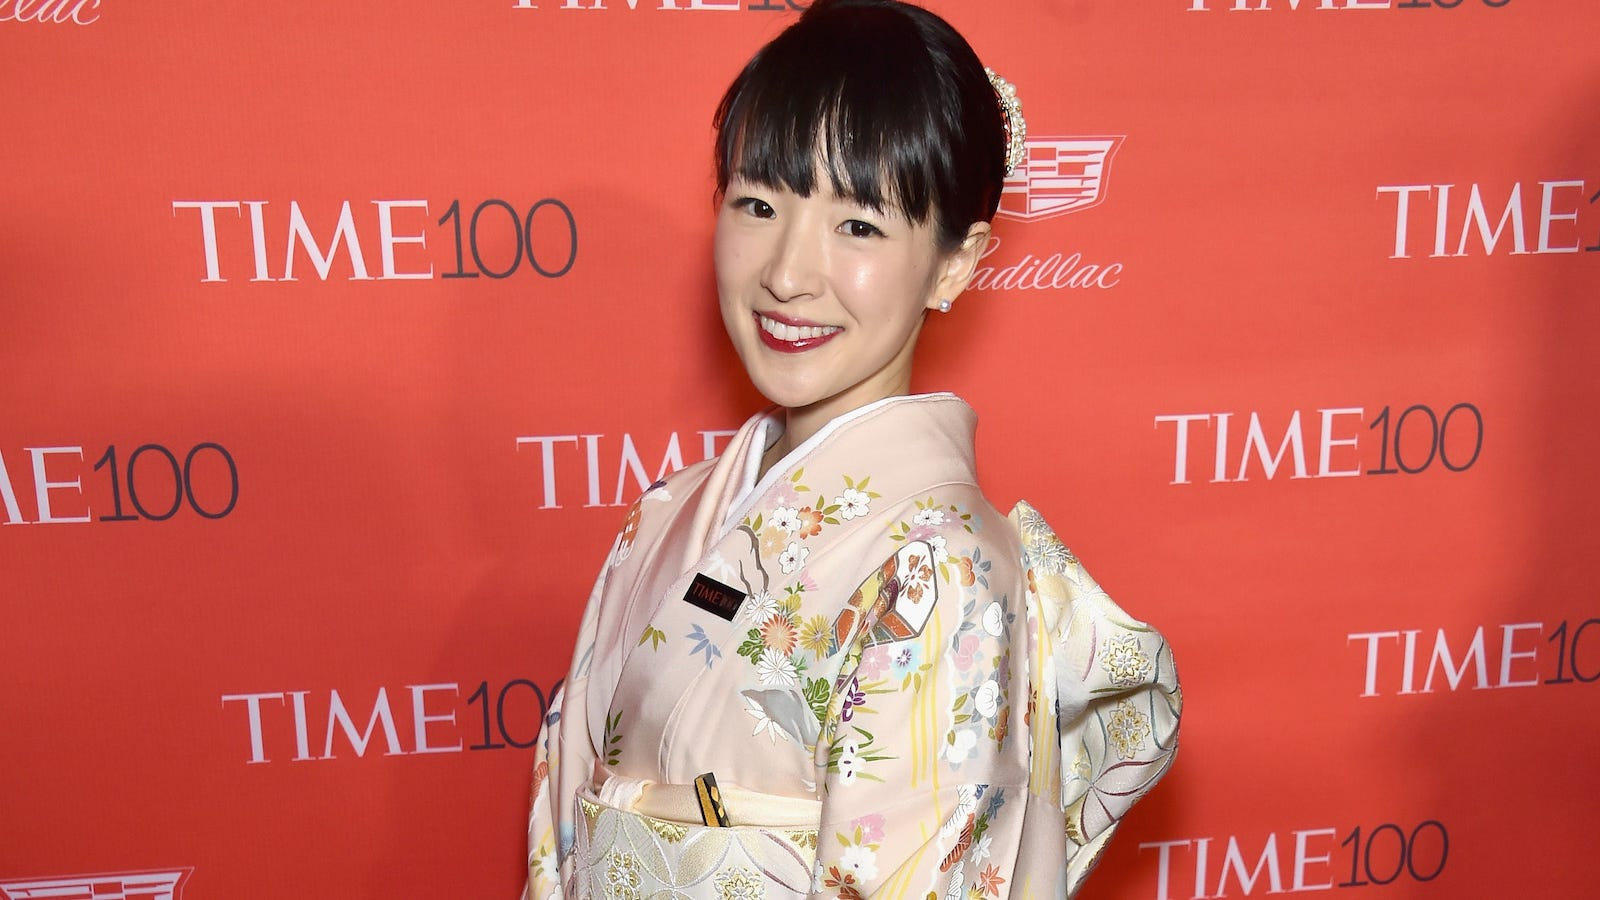 tgmle2adskwoewt9v3wk - Include Joy: Marie Kondo Will Be Coming Into Your Home Through Netflix